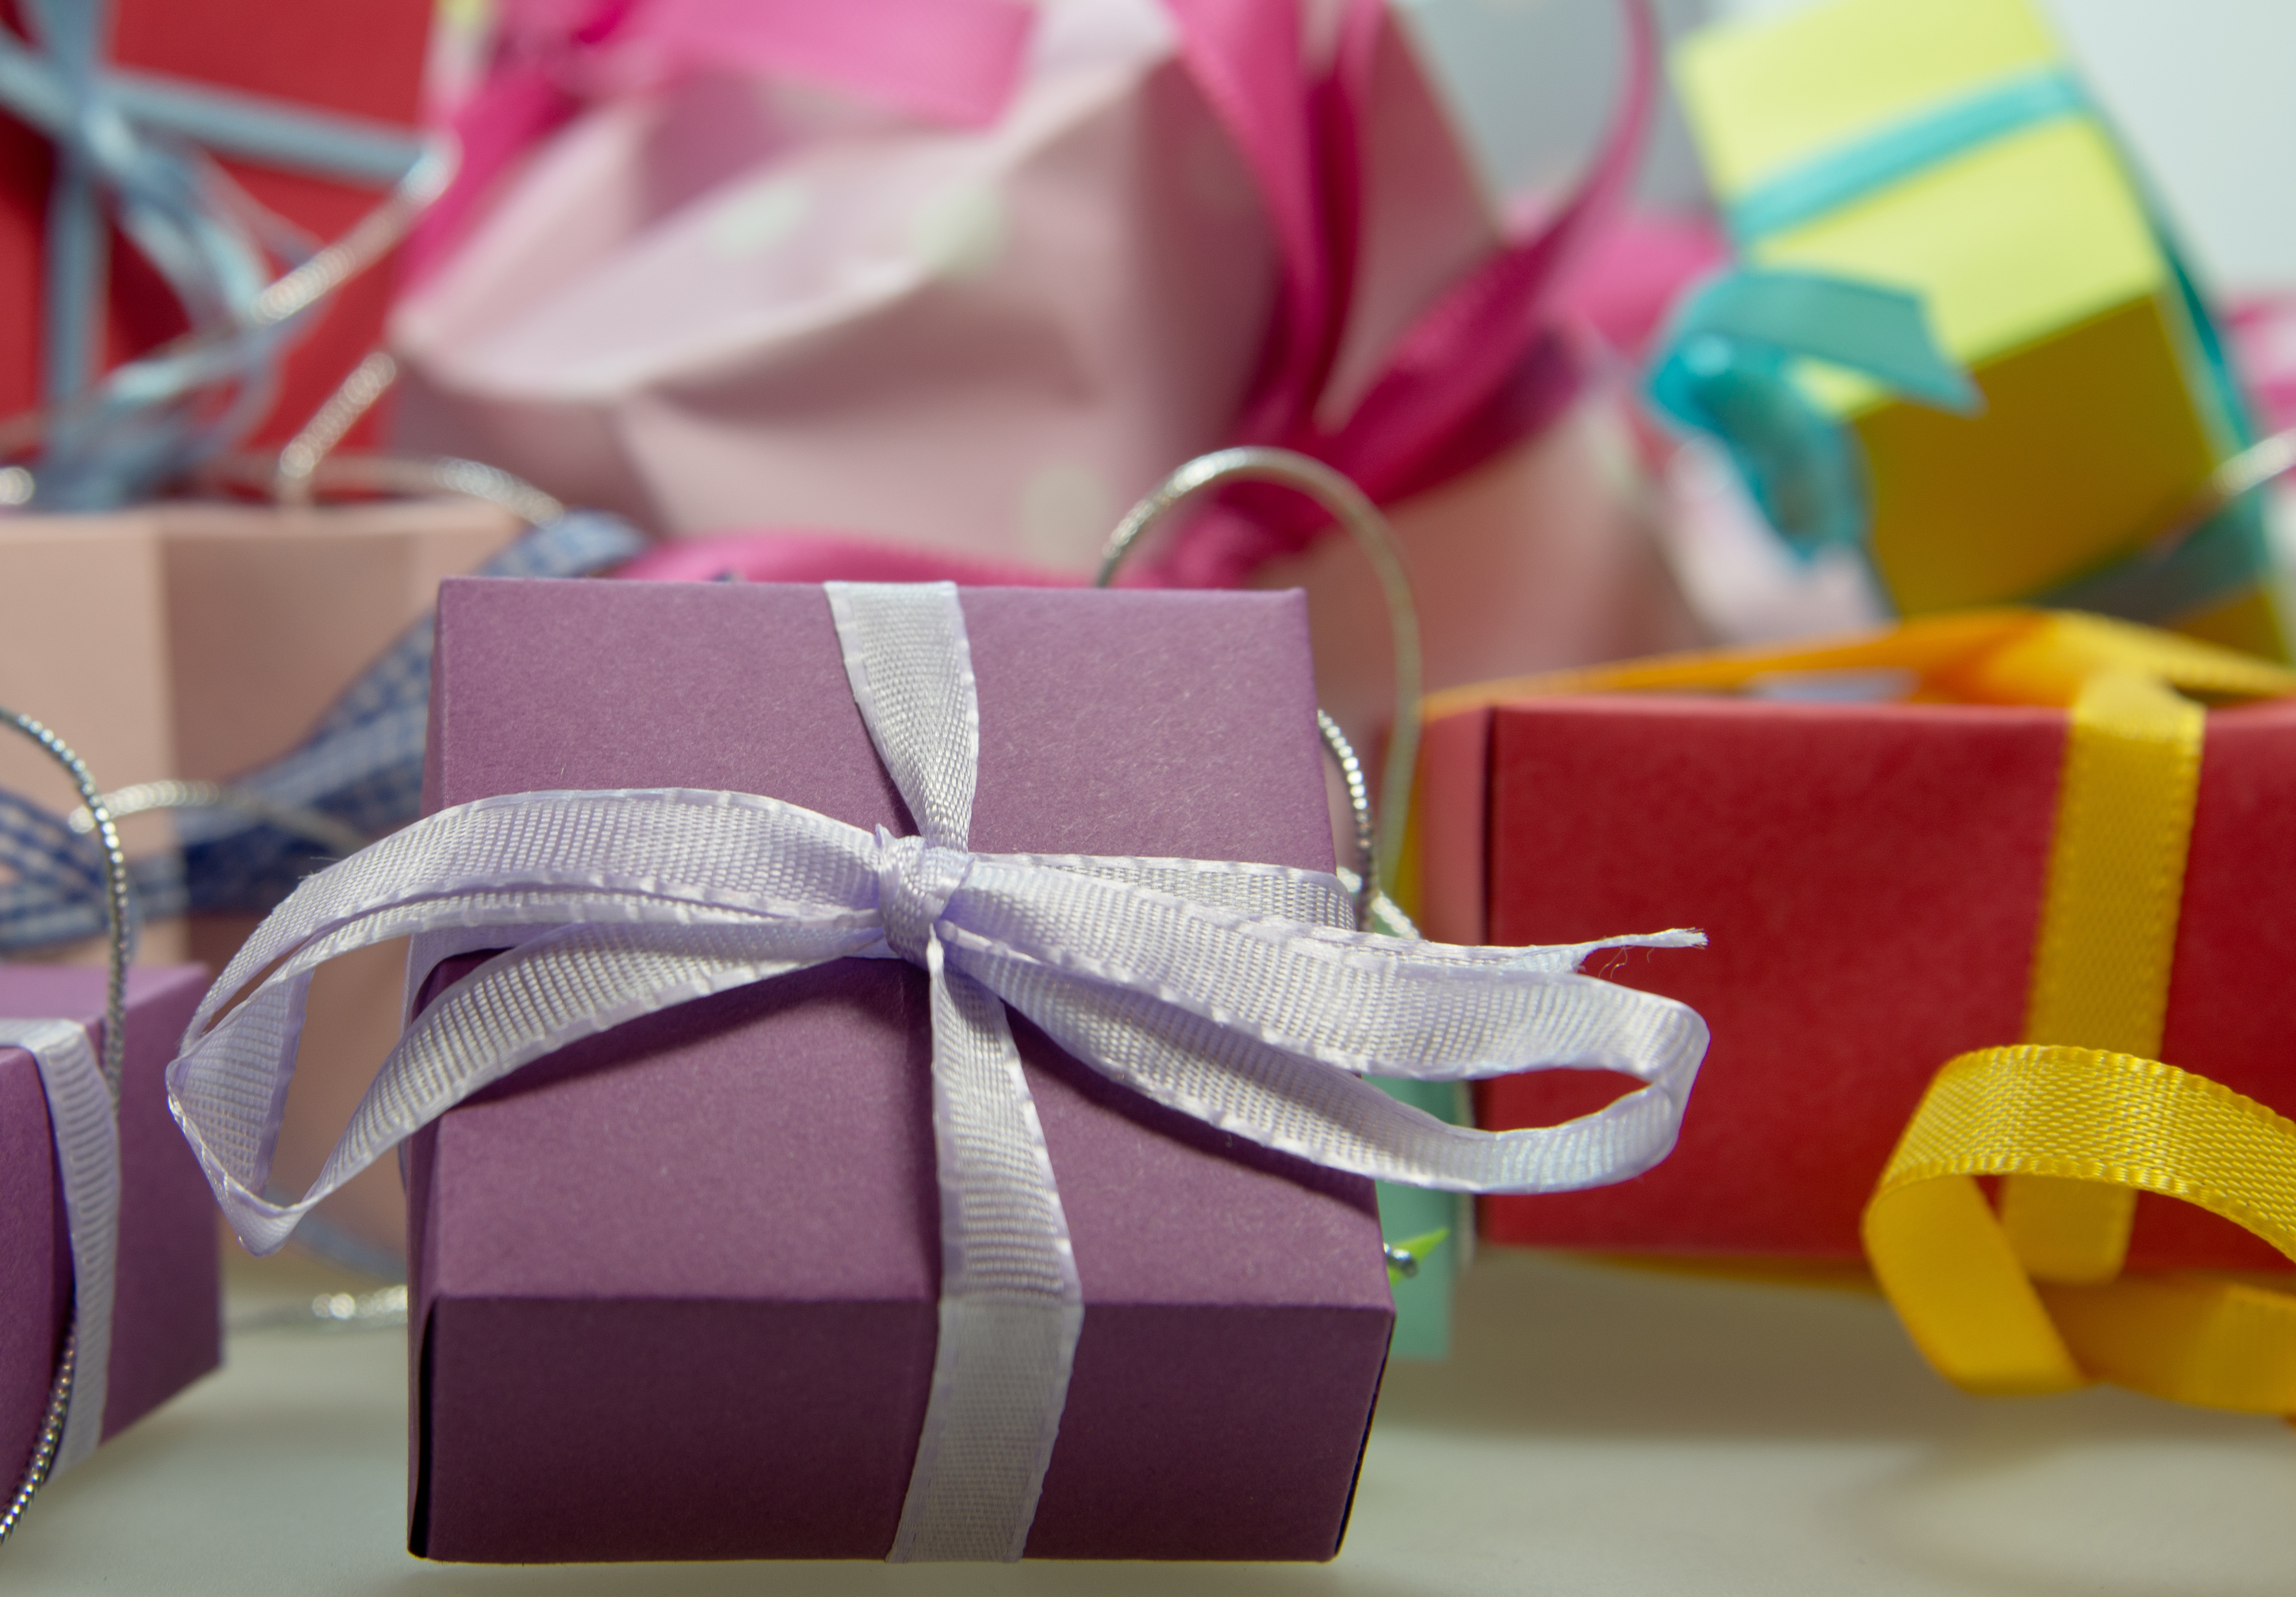 Gift, package, made, gifts,boxes